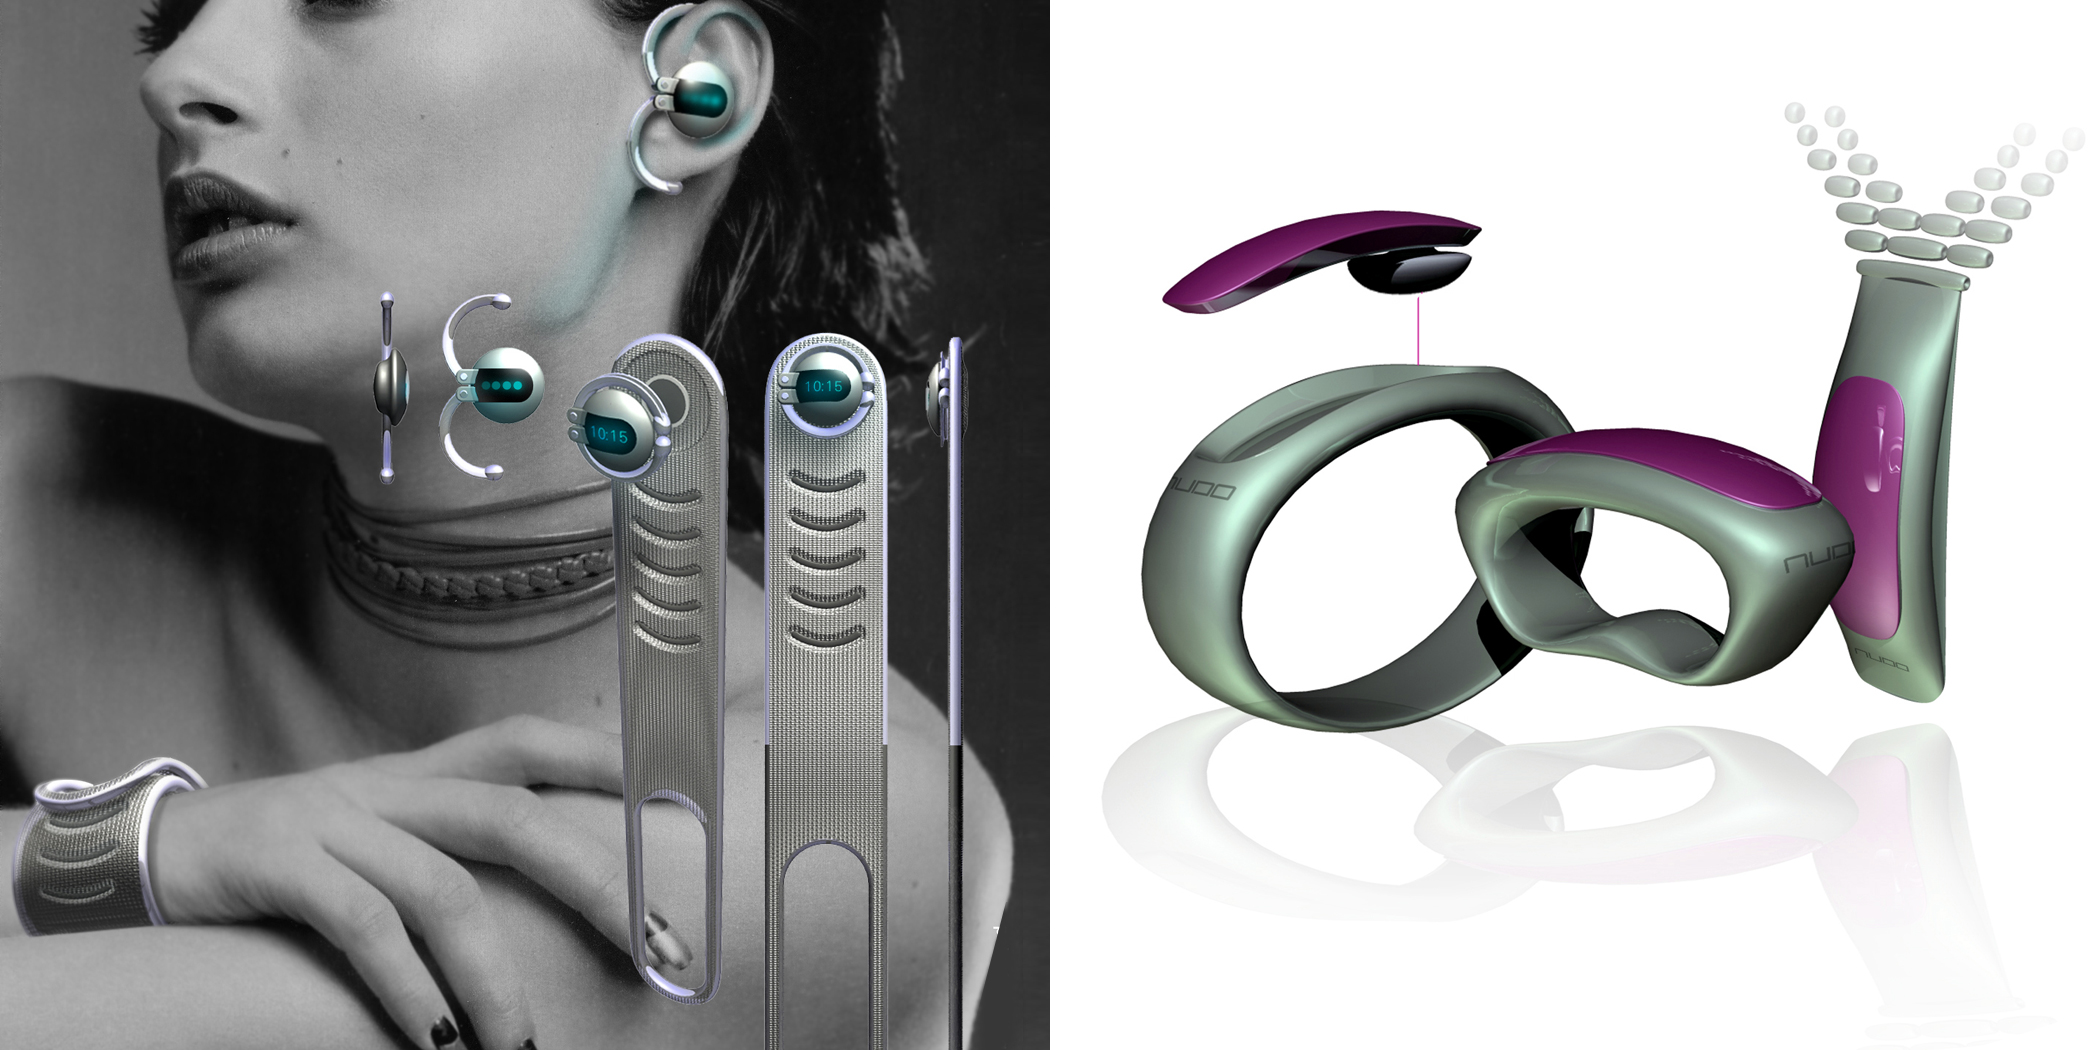 Jewelry Concepts And Technology Techno-jewelry Concepts